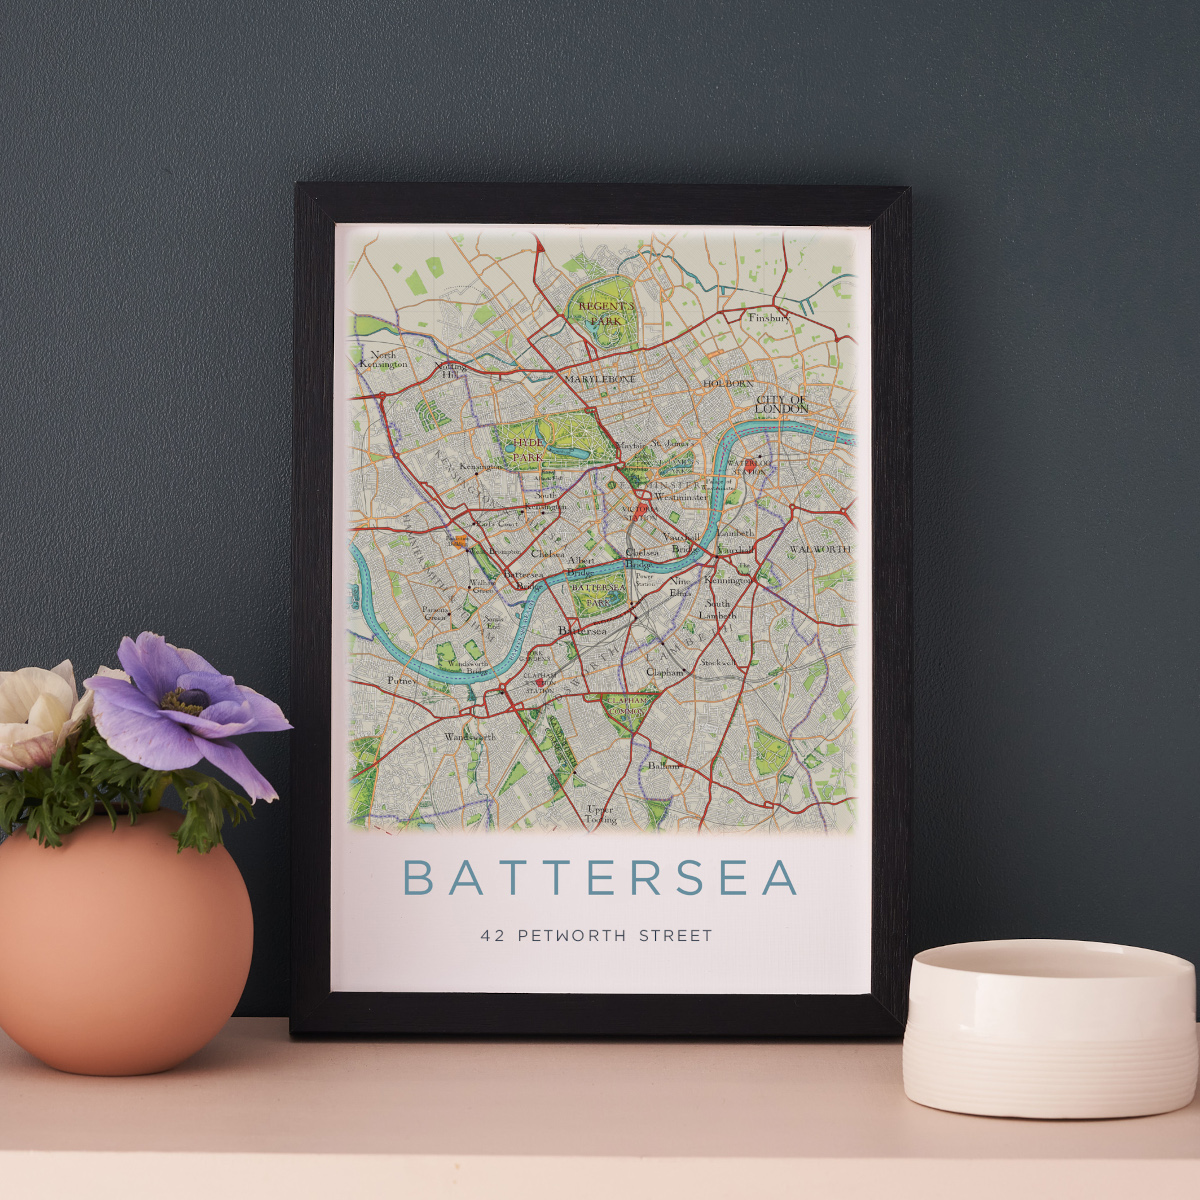 A4 poster of Battersea, London